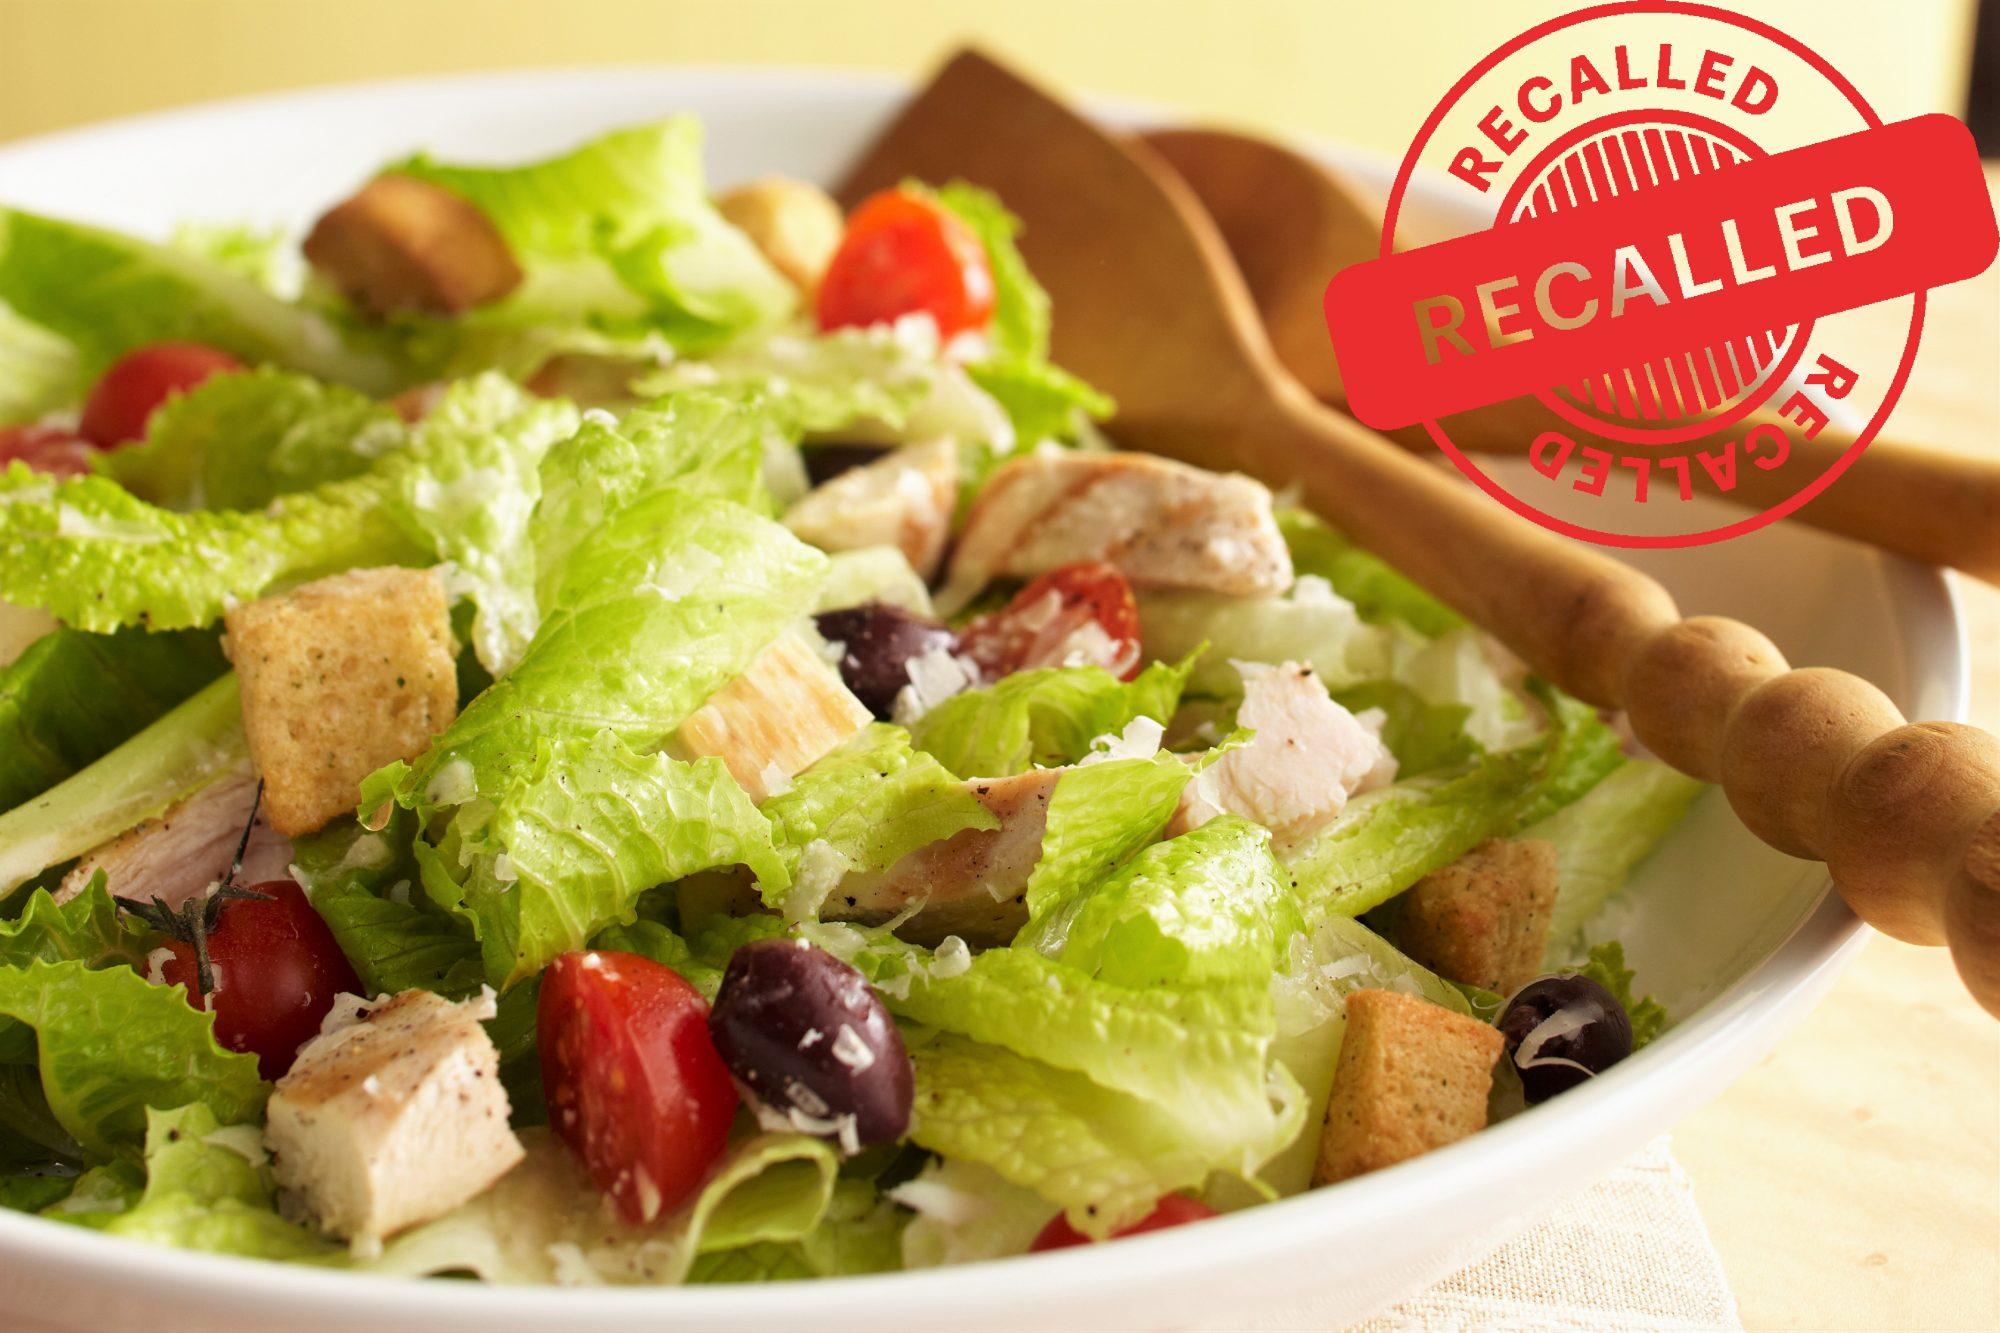 Nearly 100,000 Pounds of Salad Recalled Over E. coli Risk